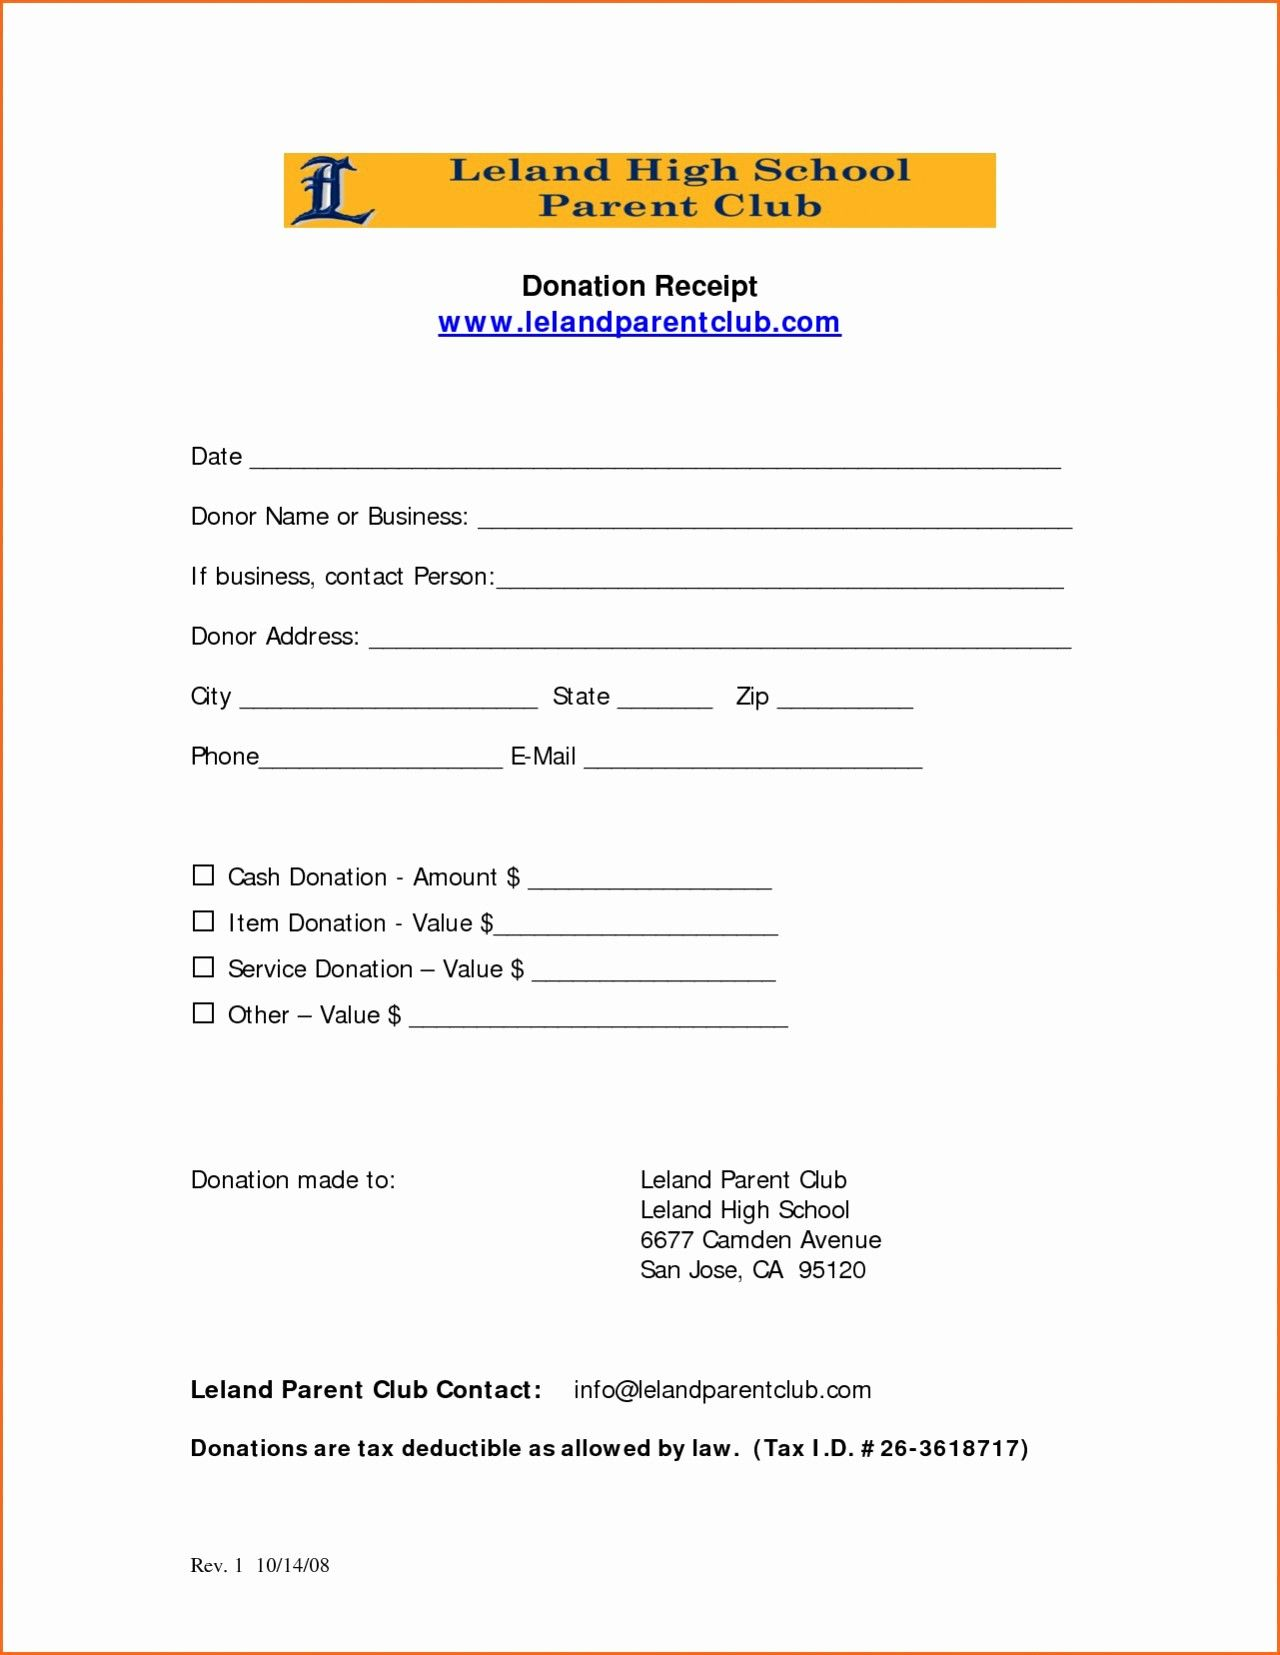 Donation Form For Tax Purposes Awesome Donation Tax Receipt Template Fresh Church Donation Letter Receipt Template Business Letter Template Donation Form